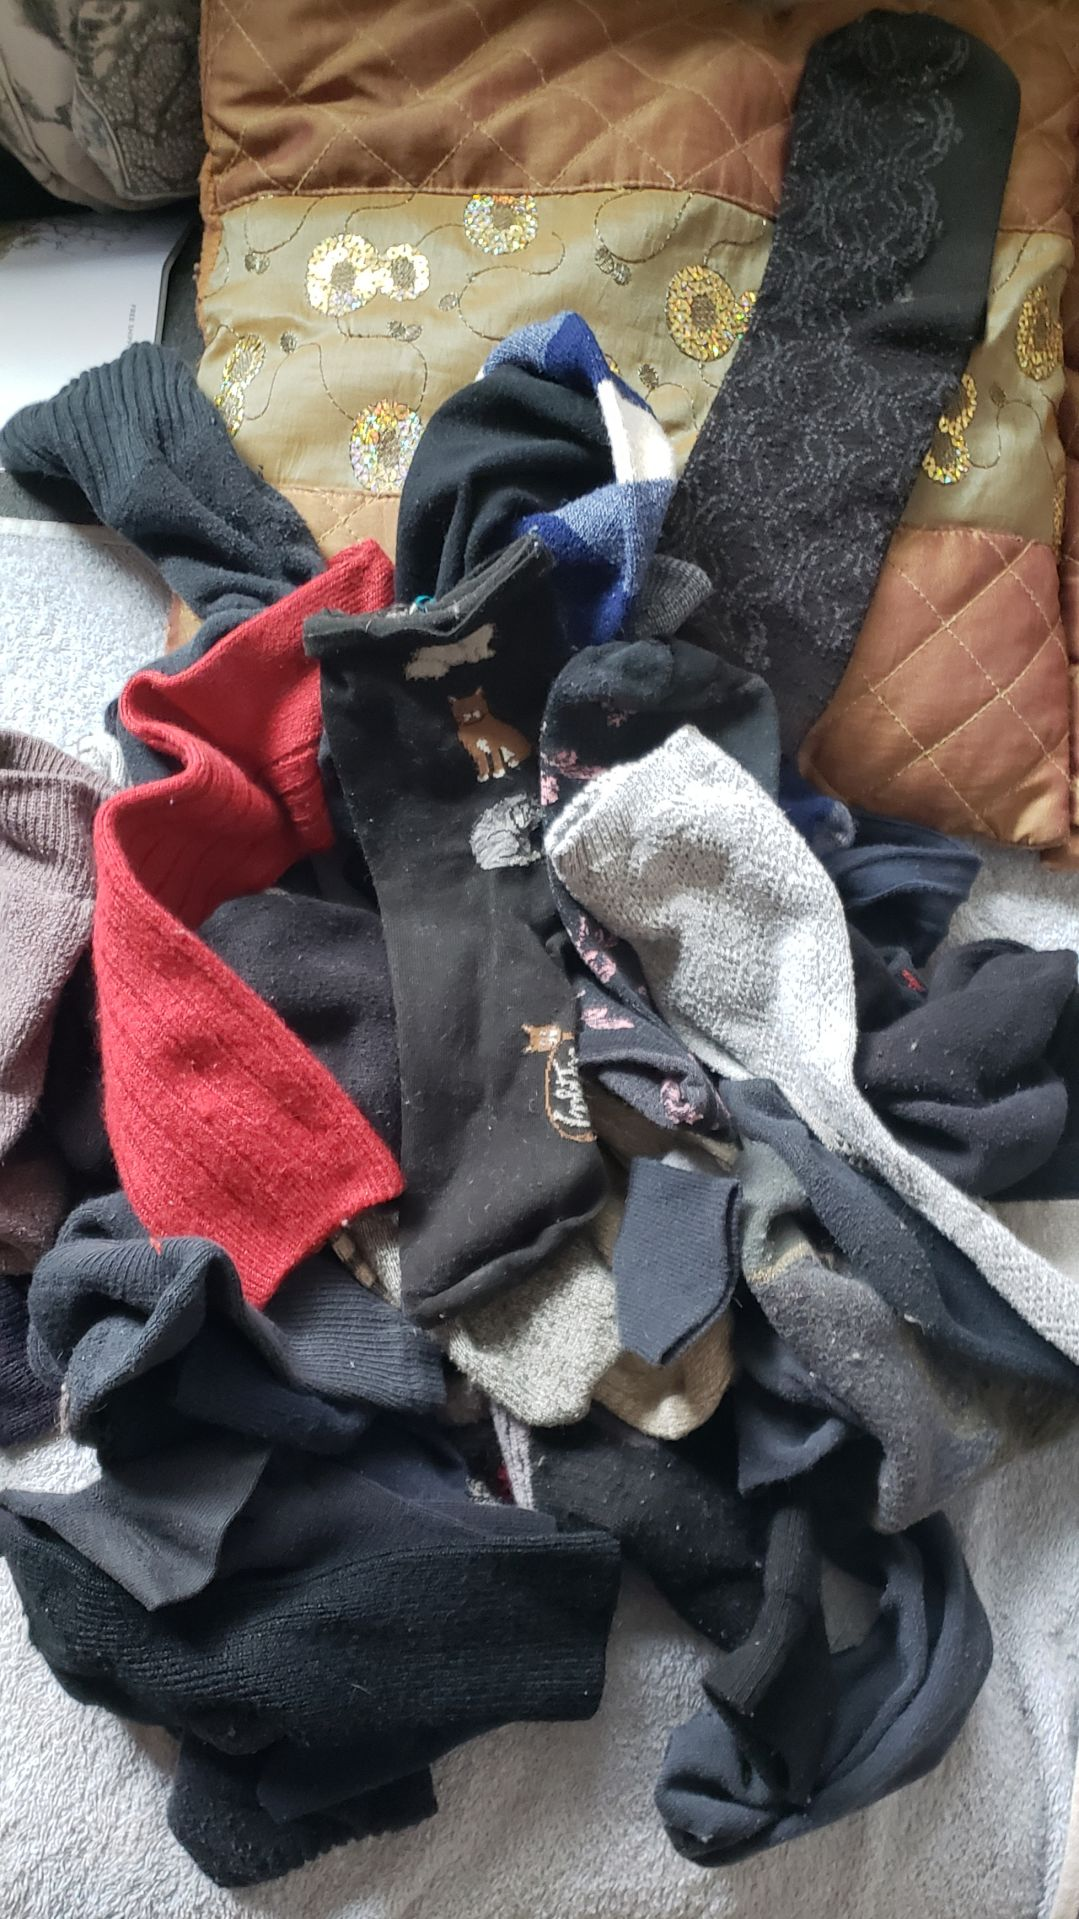 A woman's complicated relationship with (half of) her socks | Slice of Life